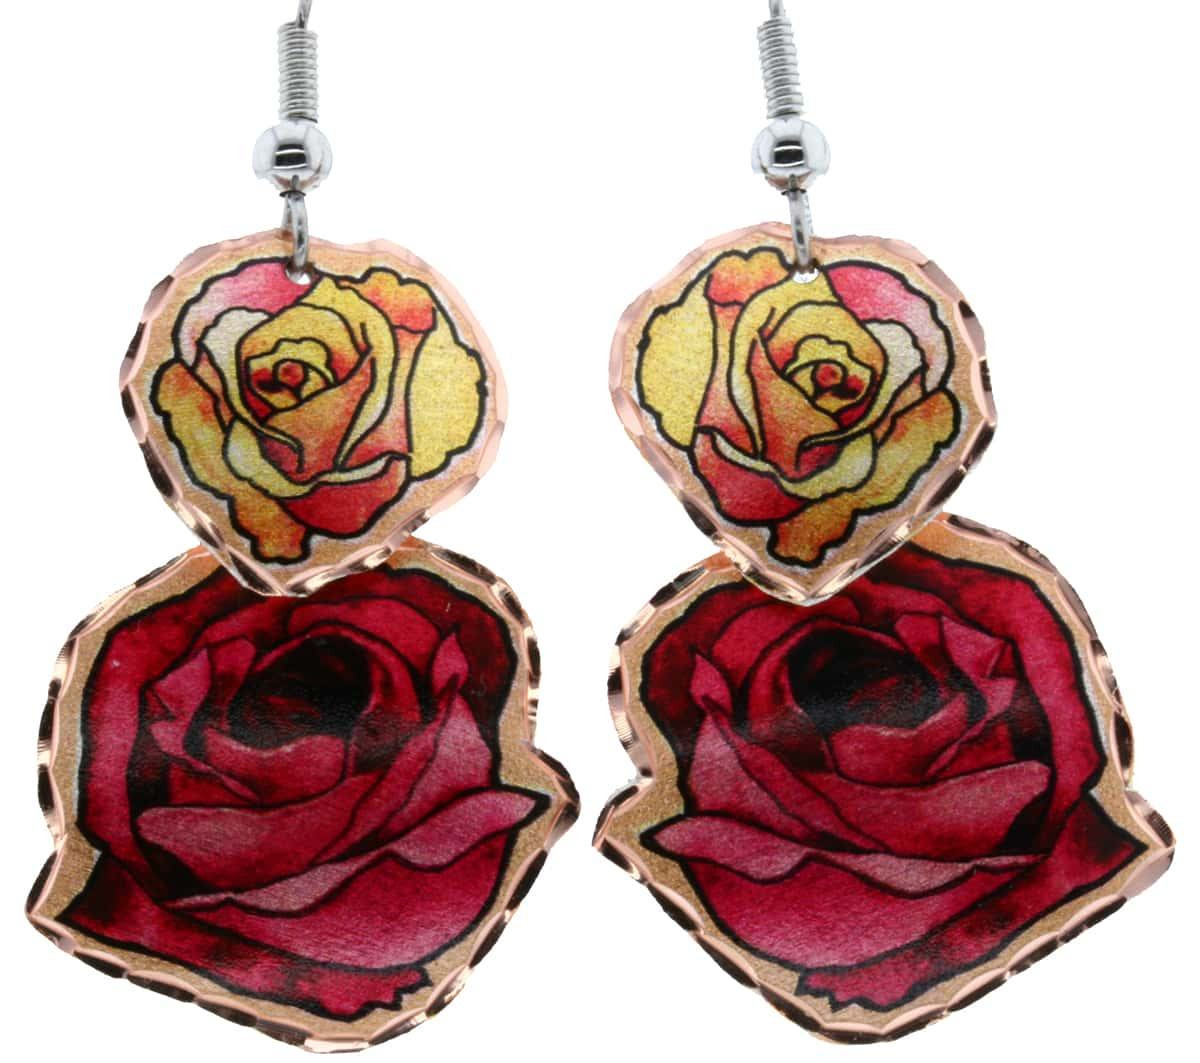 Dangle Earrings Handmade in Red and Yellow Roses